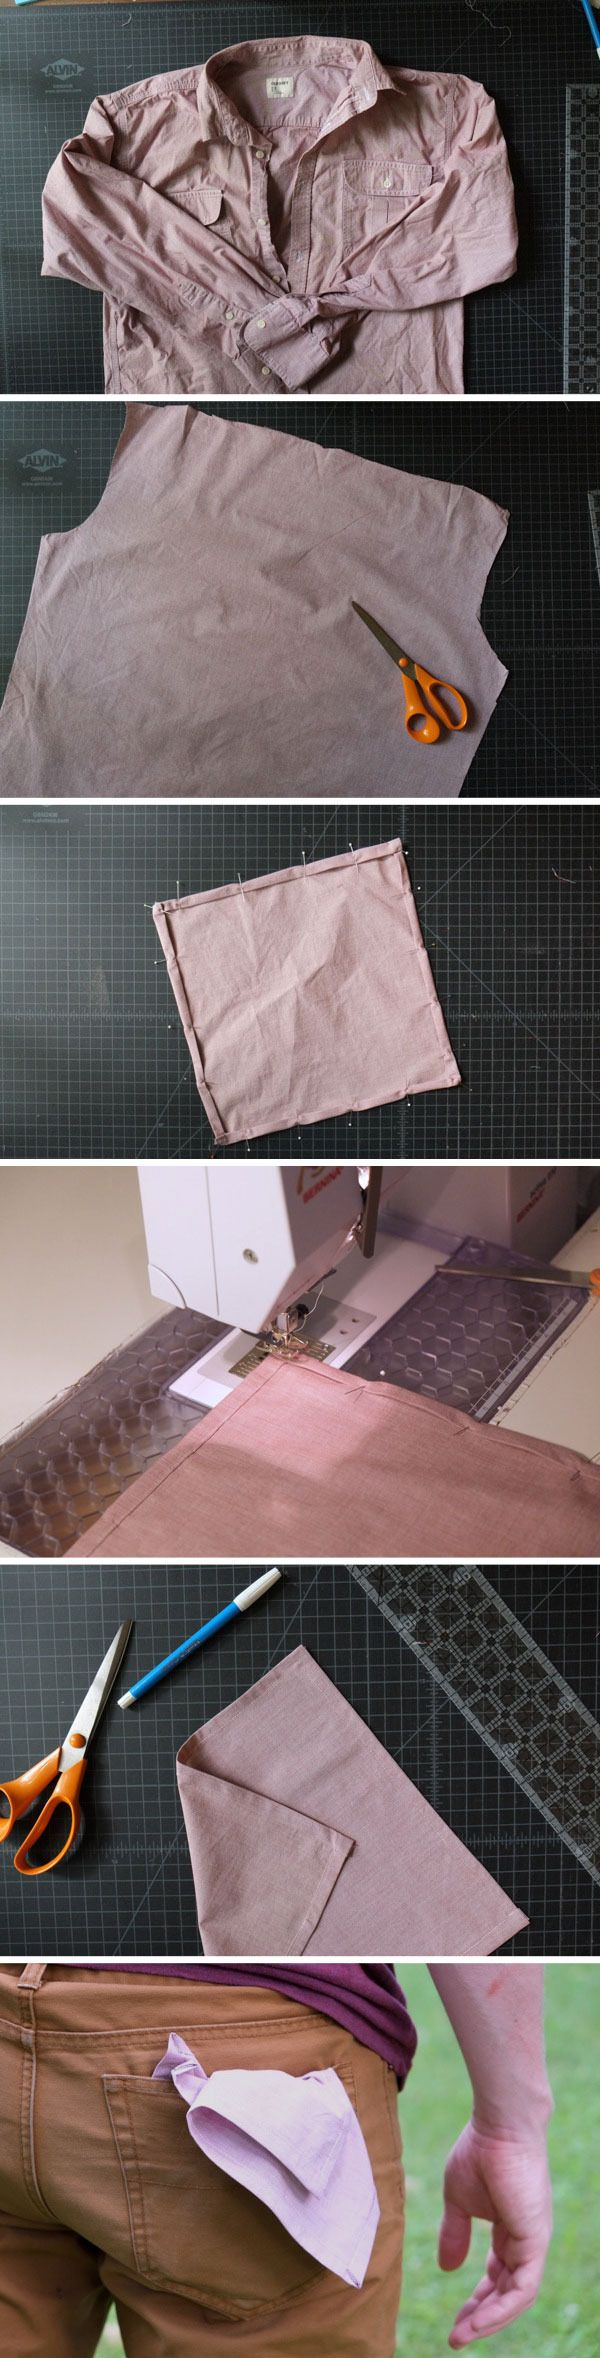 How to: Make a DIY Handkerchief or Pocket Square from an Old Shirt. Upcycling FTW!